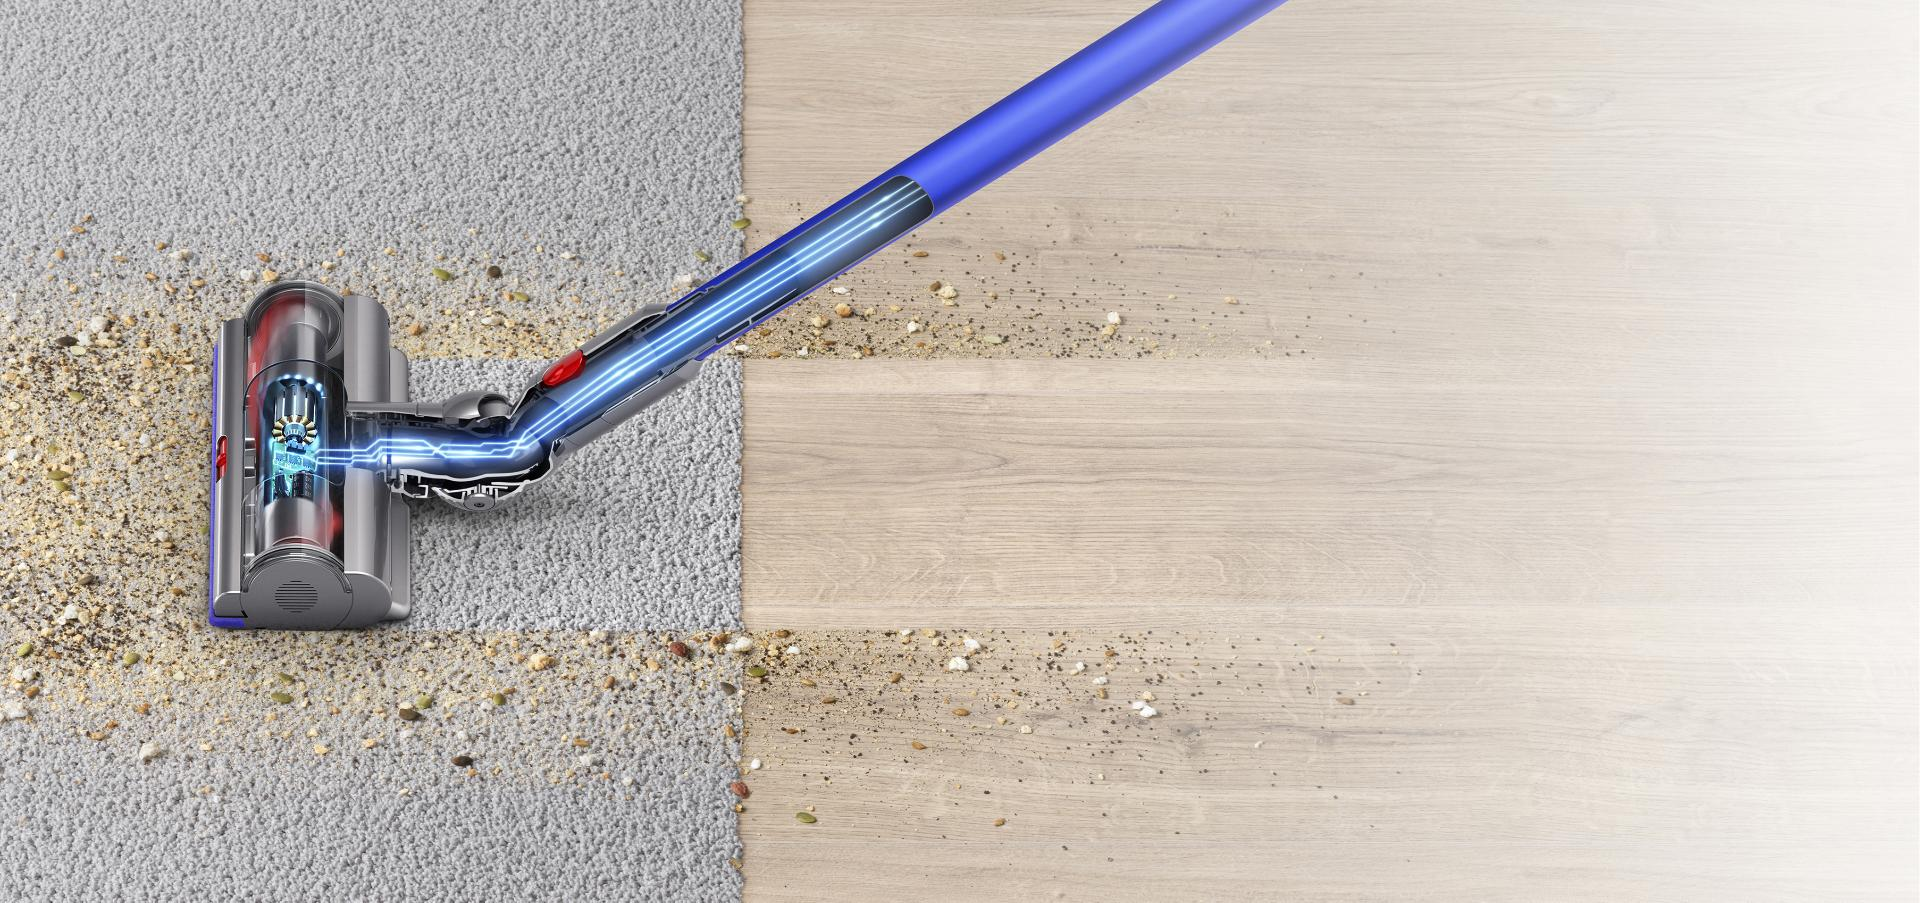 Play the video: See how the dynamic load sensor of the Dyson V11 vacuum cleaner works.